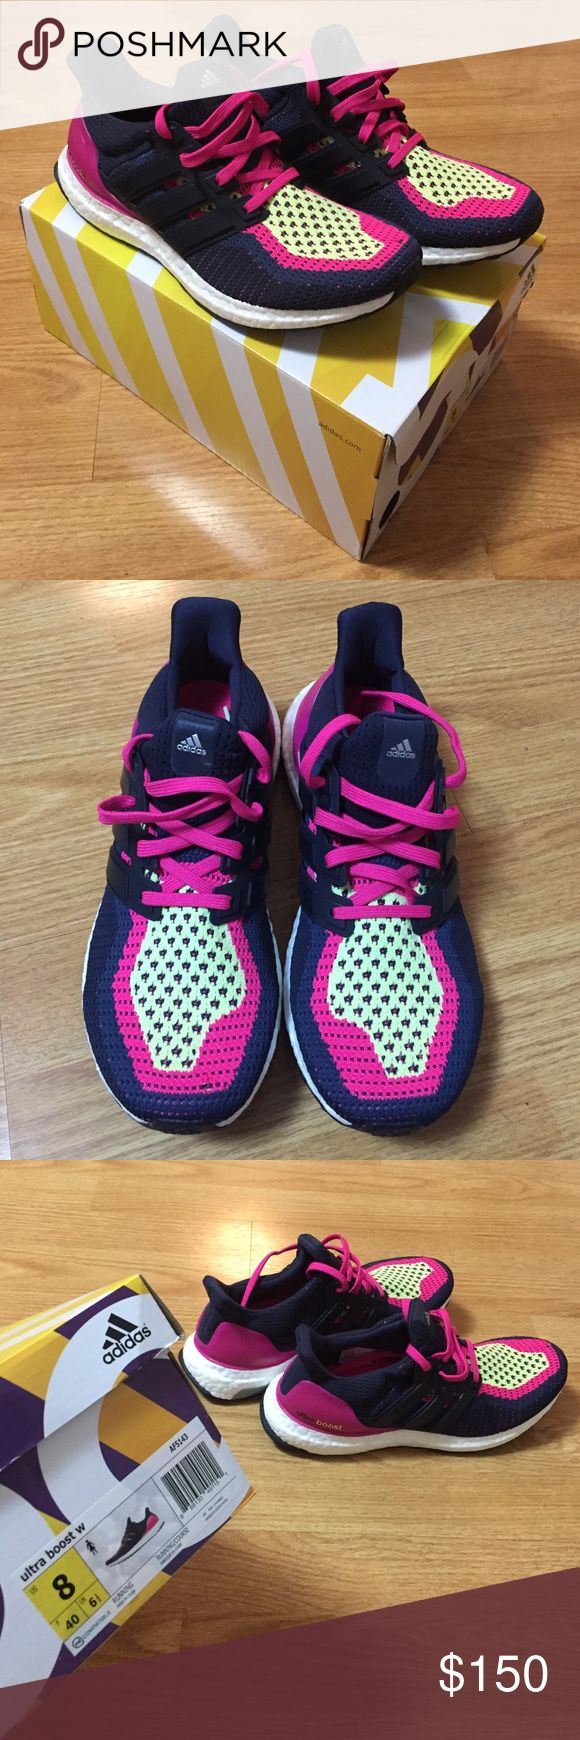 competitive price 88805 f67bb ... Adidas Ultra Boost, Womens size 8 Athletic Shoes Brand New In Box, ...